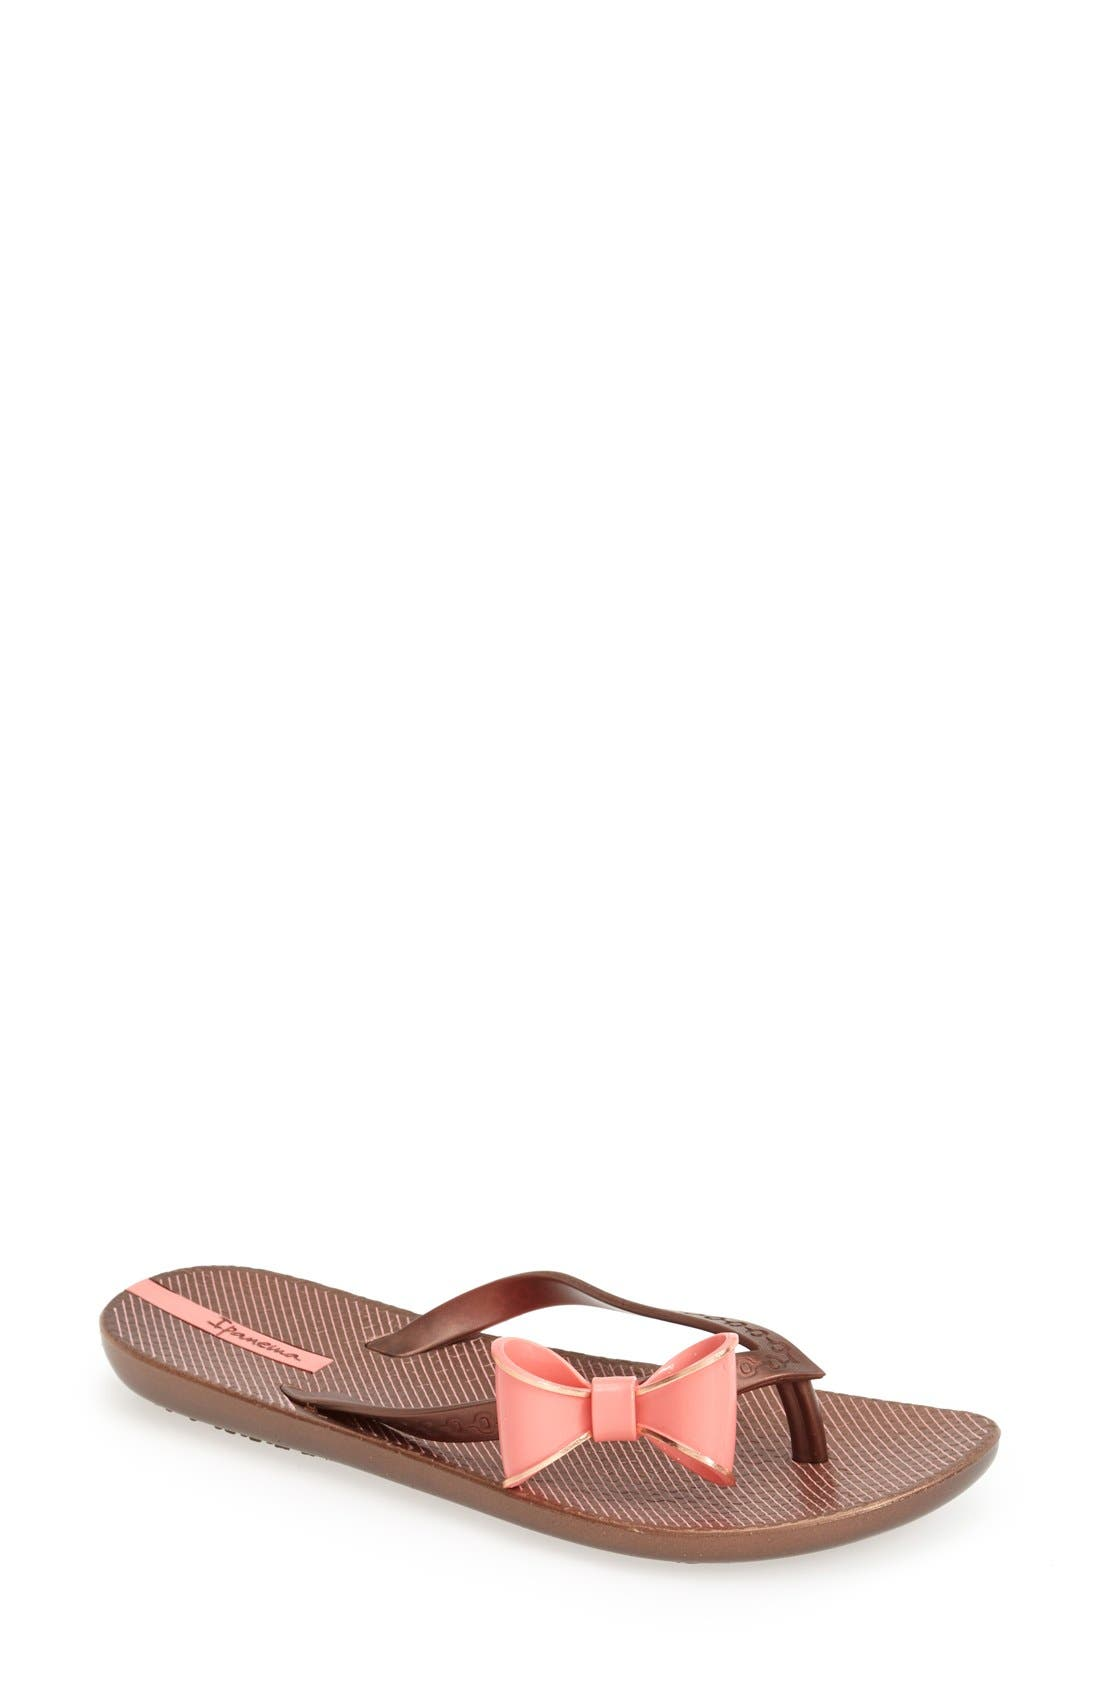 Alternate Image 1 Selected - Ipanema 'Neo Clara' Flip Flop (Women)